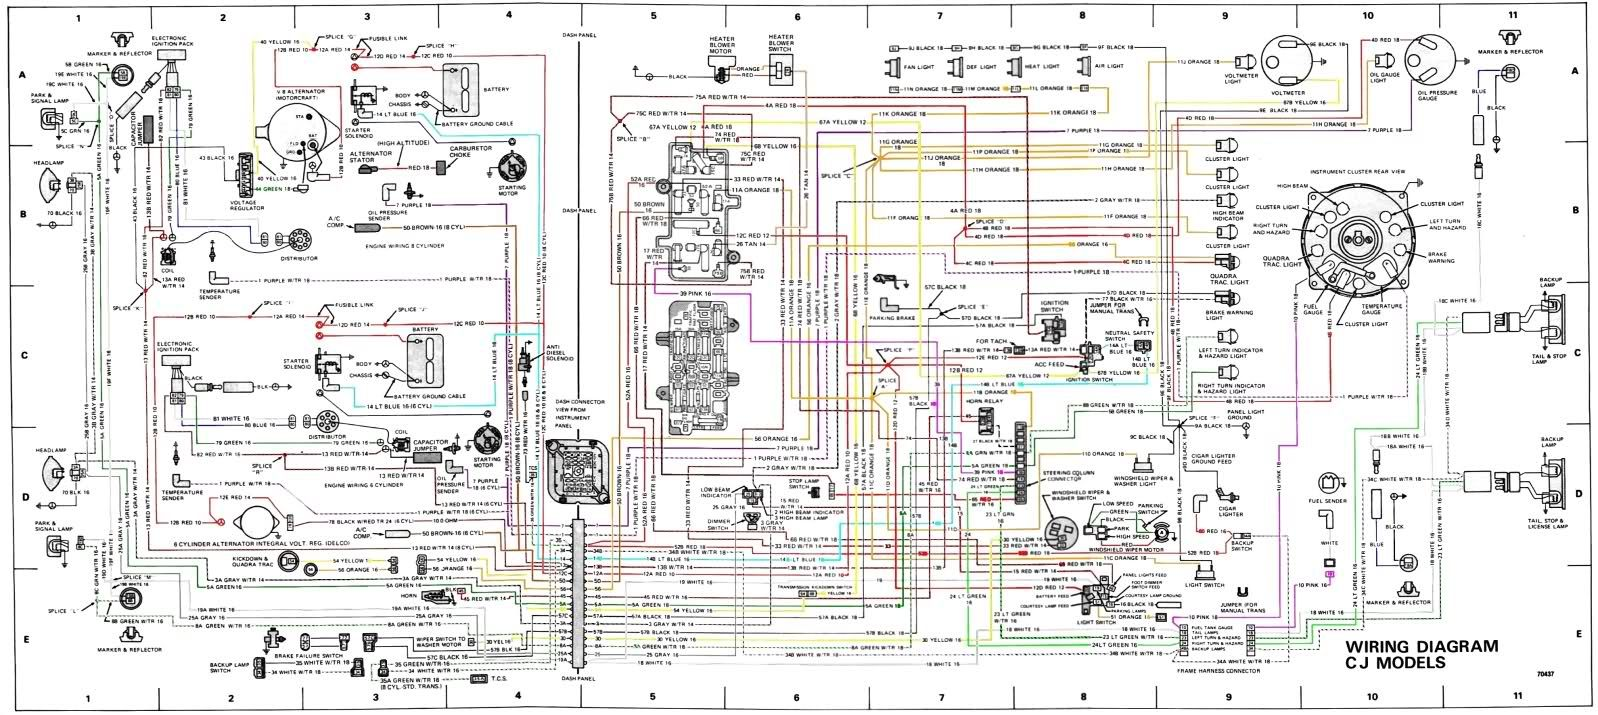 medium resolution of cj7 wiring harness wiring diagram bulk head wiring diagram 1980 jeep cj7